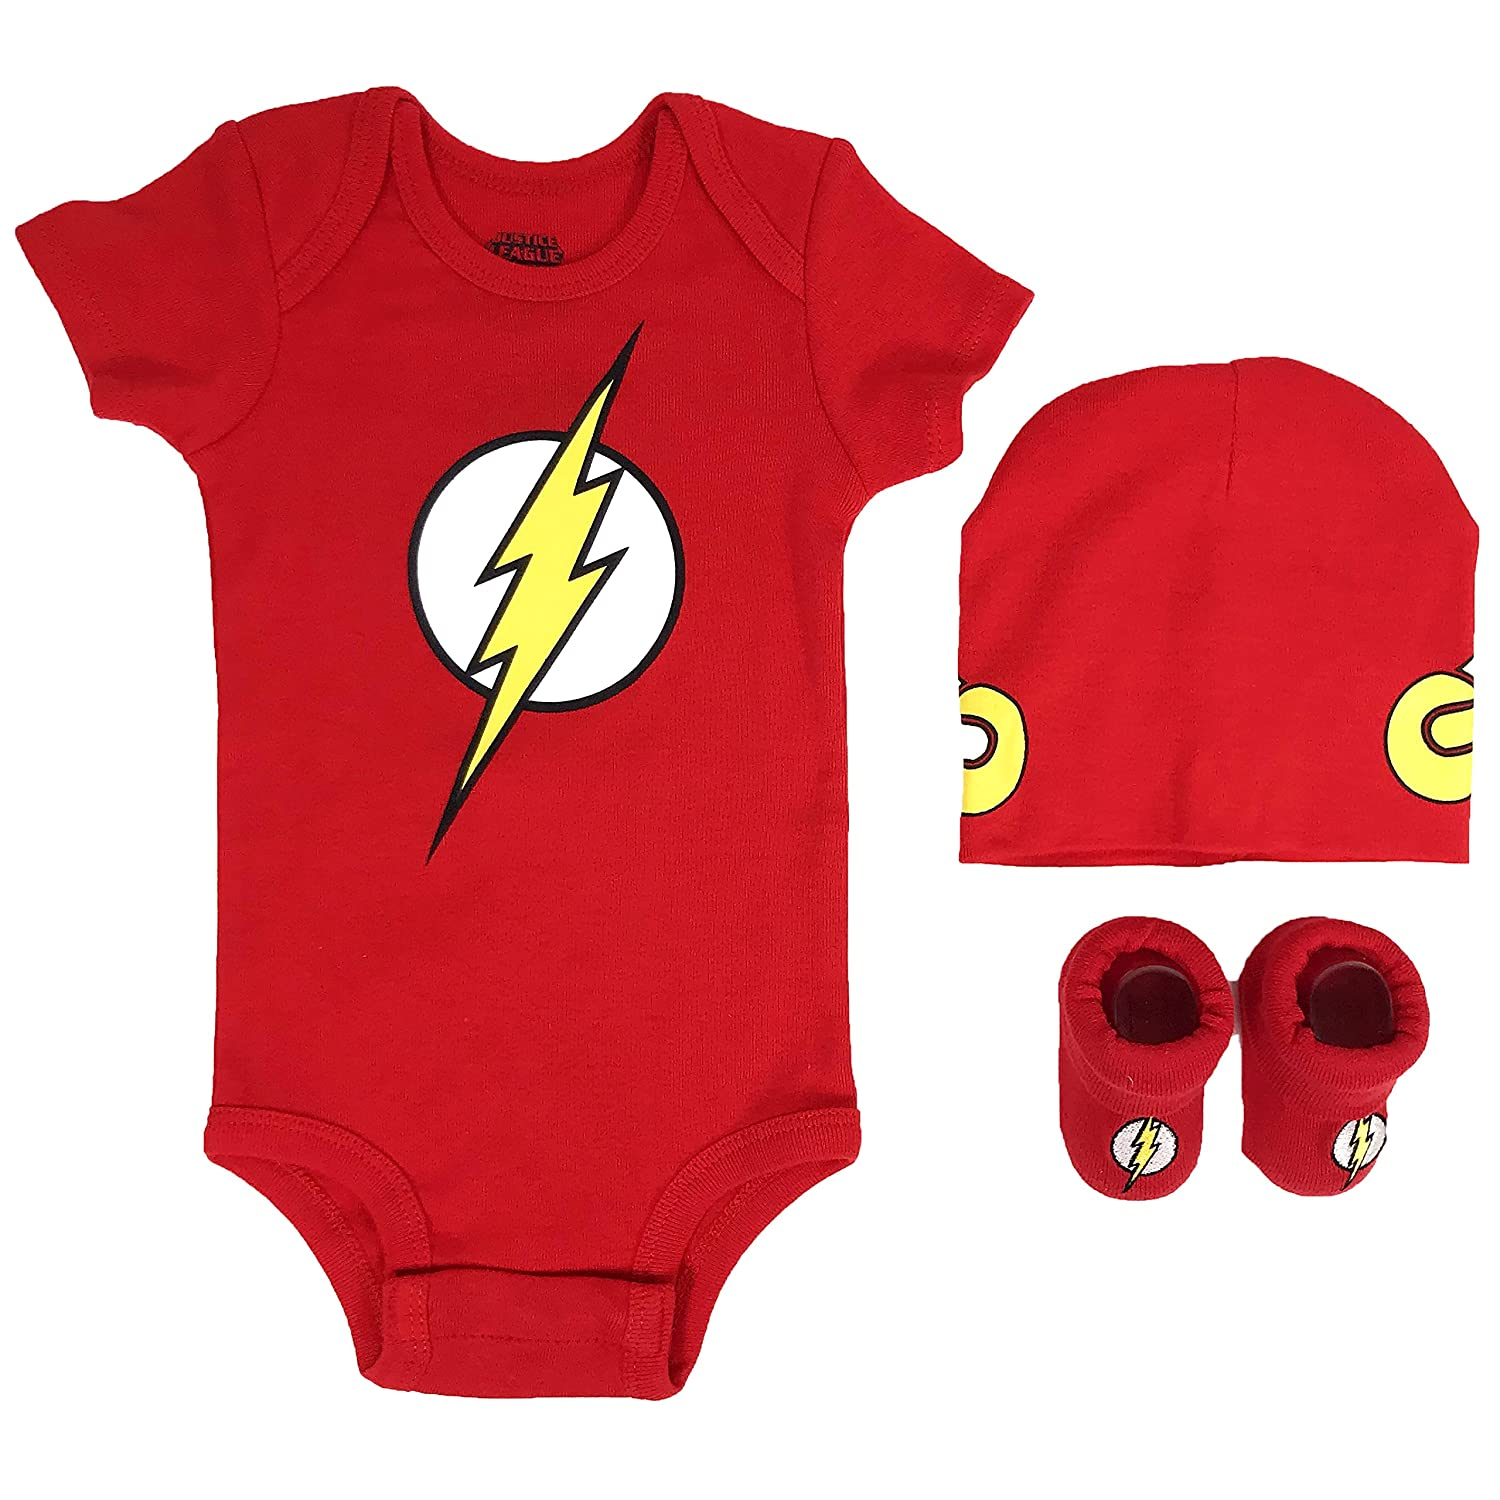 DC Comics Baby Boy's Superman, Wonder Woman, Flash, Batman 3-pc Set in Gift Box Baby Costume DC Comics Baby Boys Superman Black 0-6 IBSP1831